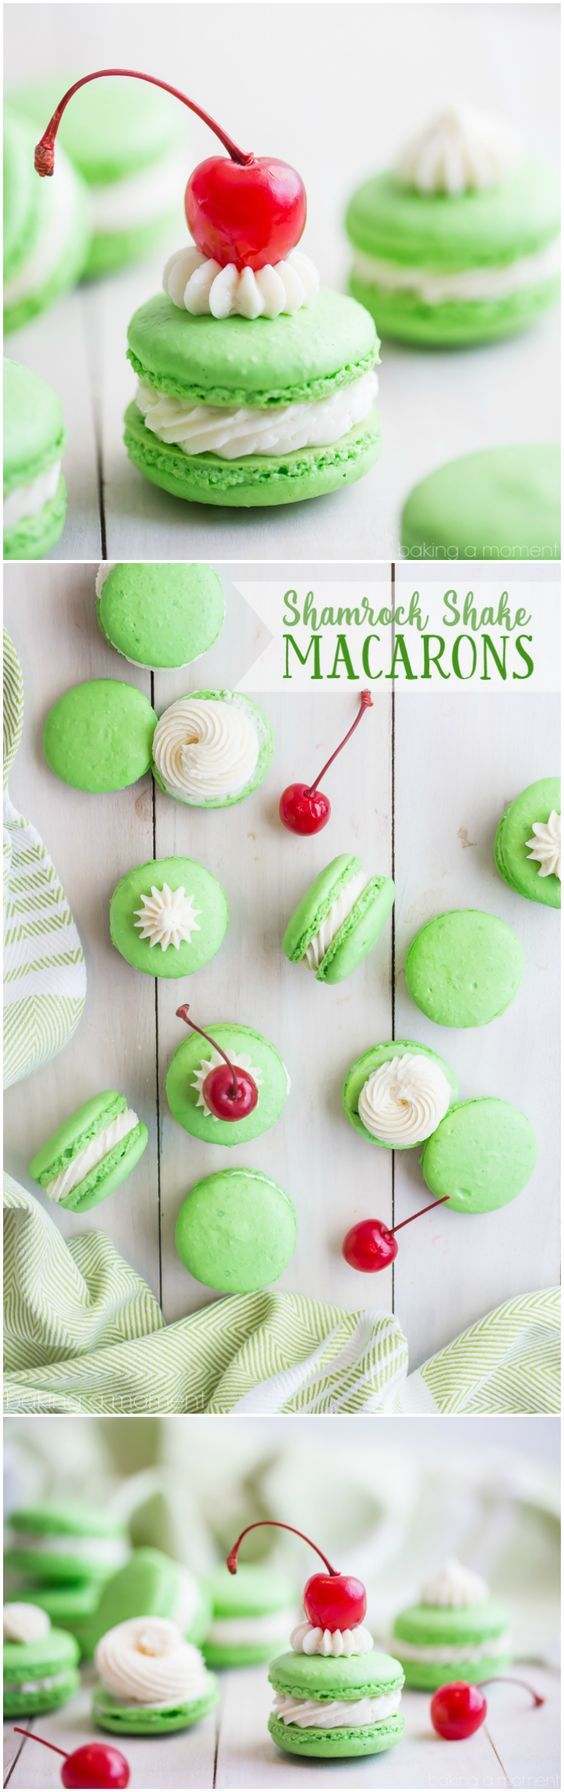 Shamrock Shake Macarons Recipe via Baking a Moment - So much fun for St. Patrick's Day!